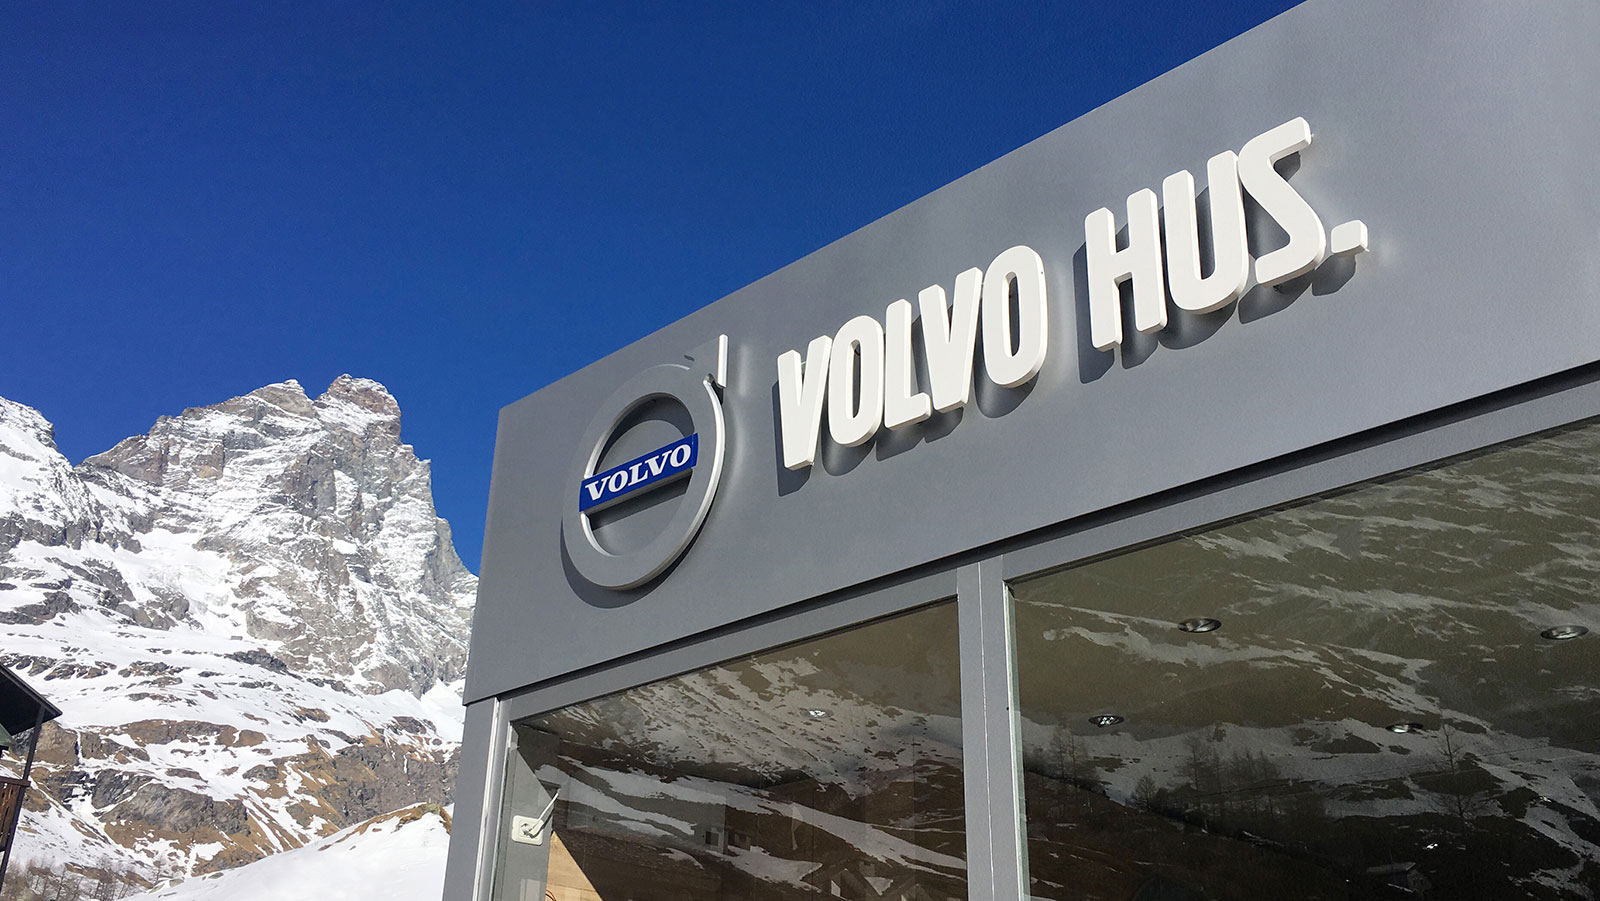 VOLVO – WINTER TOUR